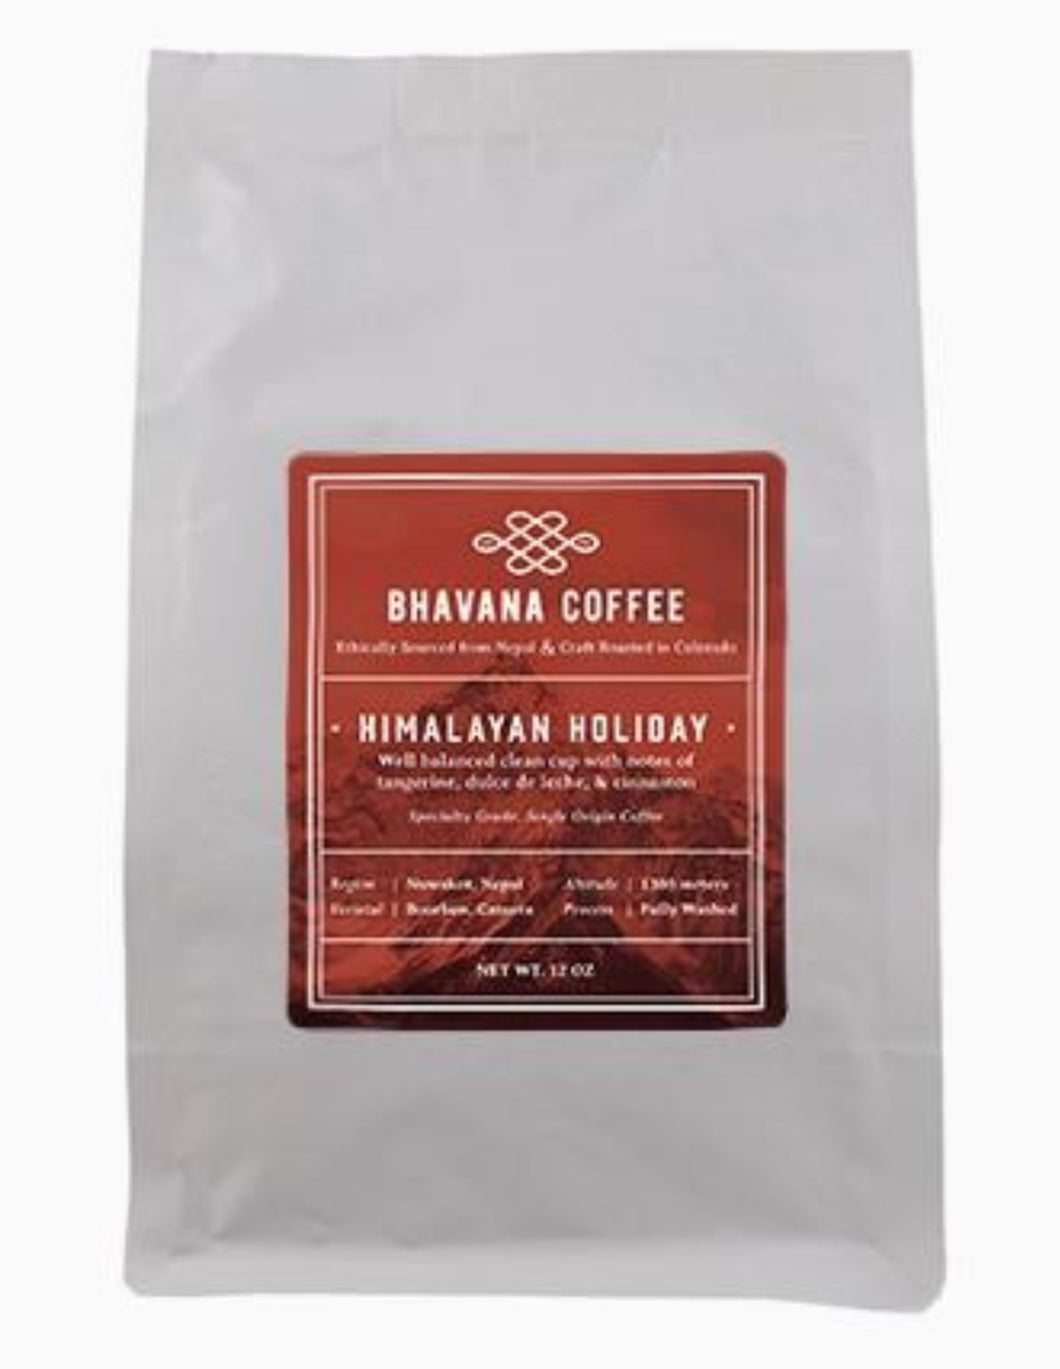 Holiday Edition - Nepal Himalayan Holiday Roast, 12oz single origin whole bean coffee